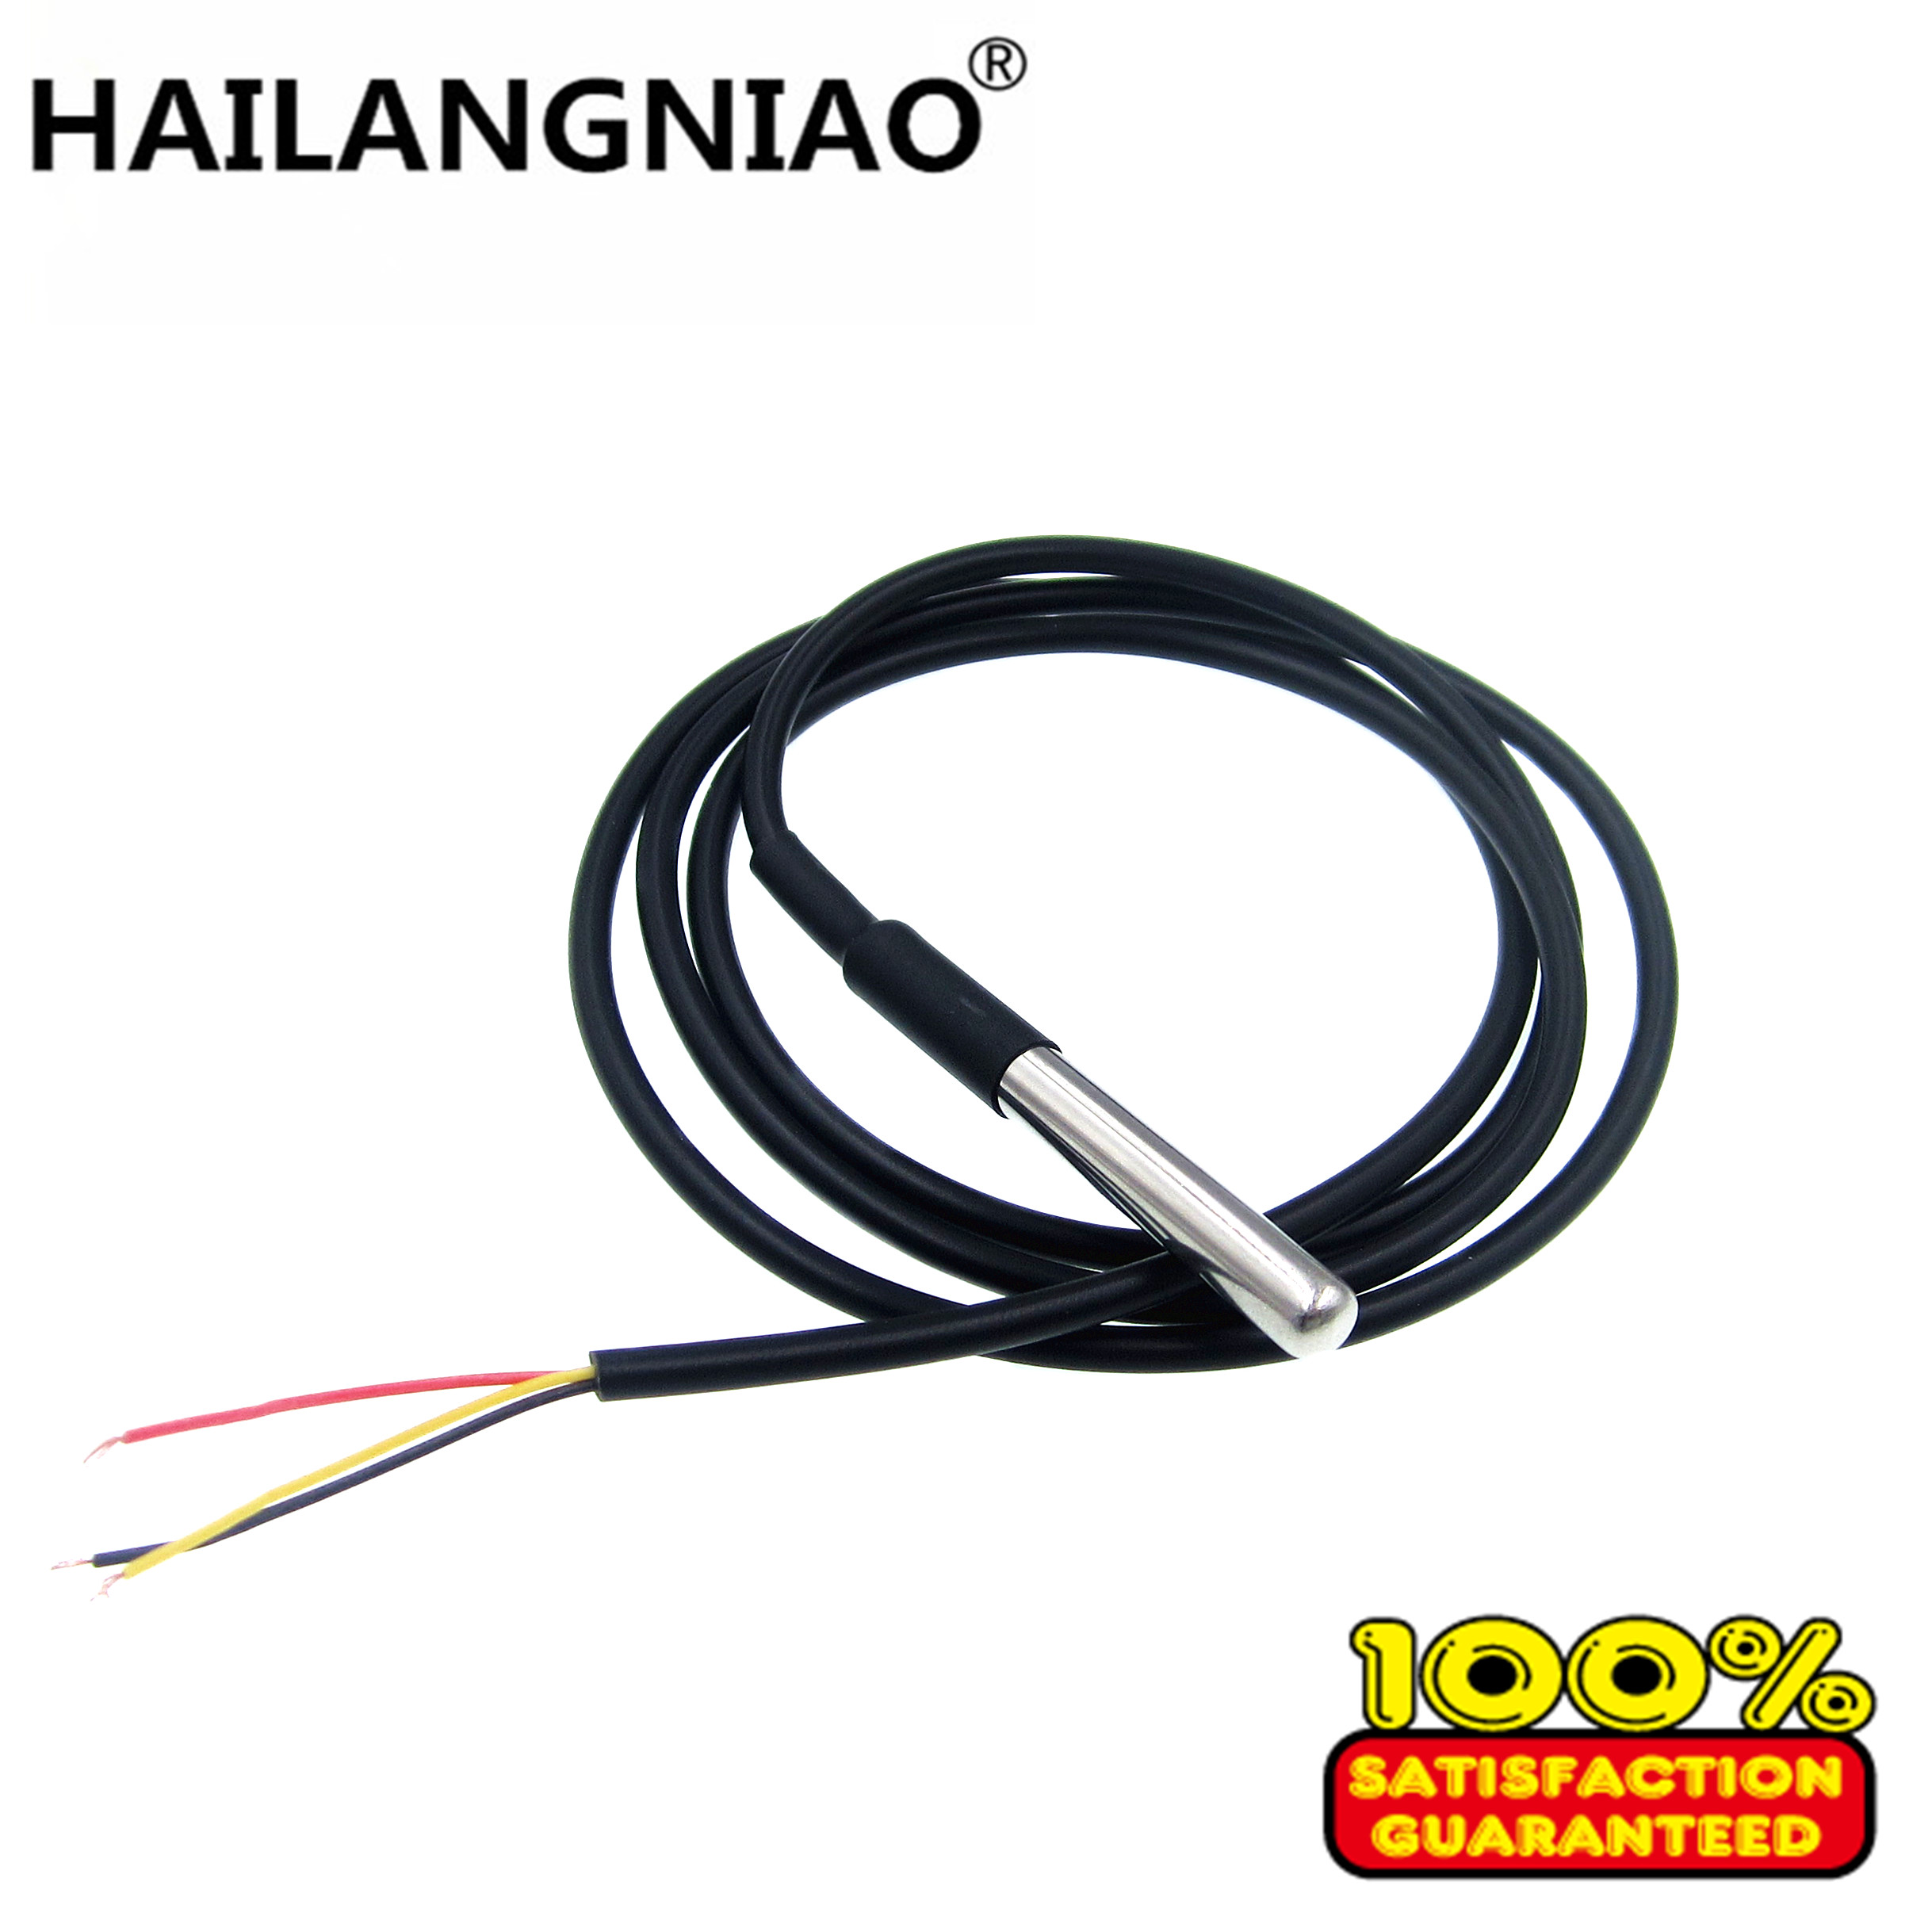 1pcs <font><b>1M</b></font> 2M 3M <font><b>DS18b20</b></font> Stainless steel package Waterproof <font><b>DS18b20</b></font> temperature probe temperature sensor 18B20 image